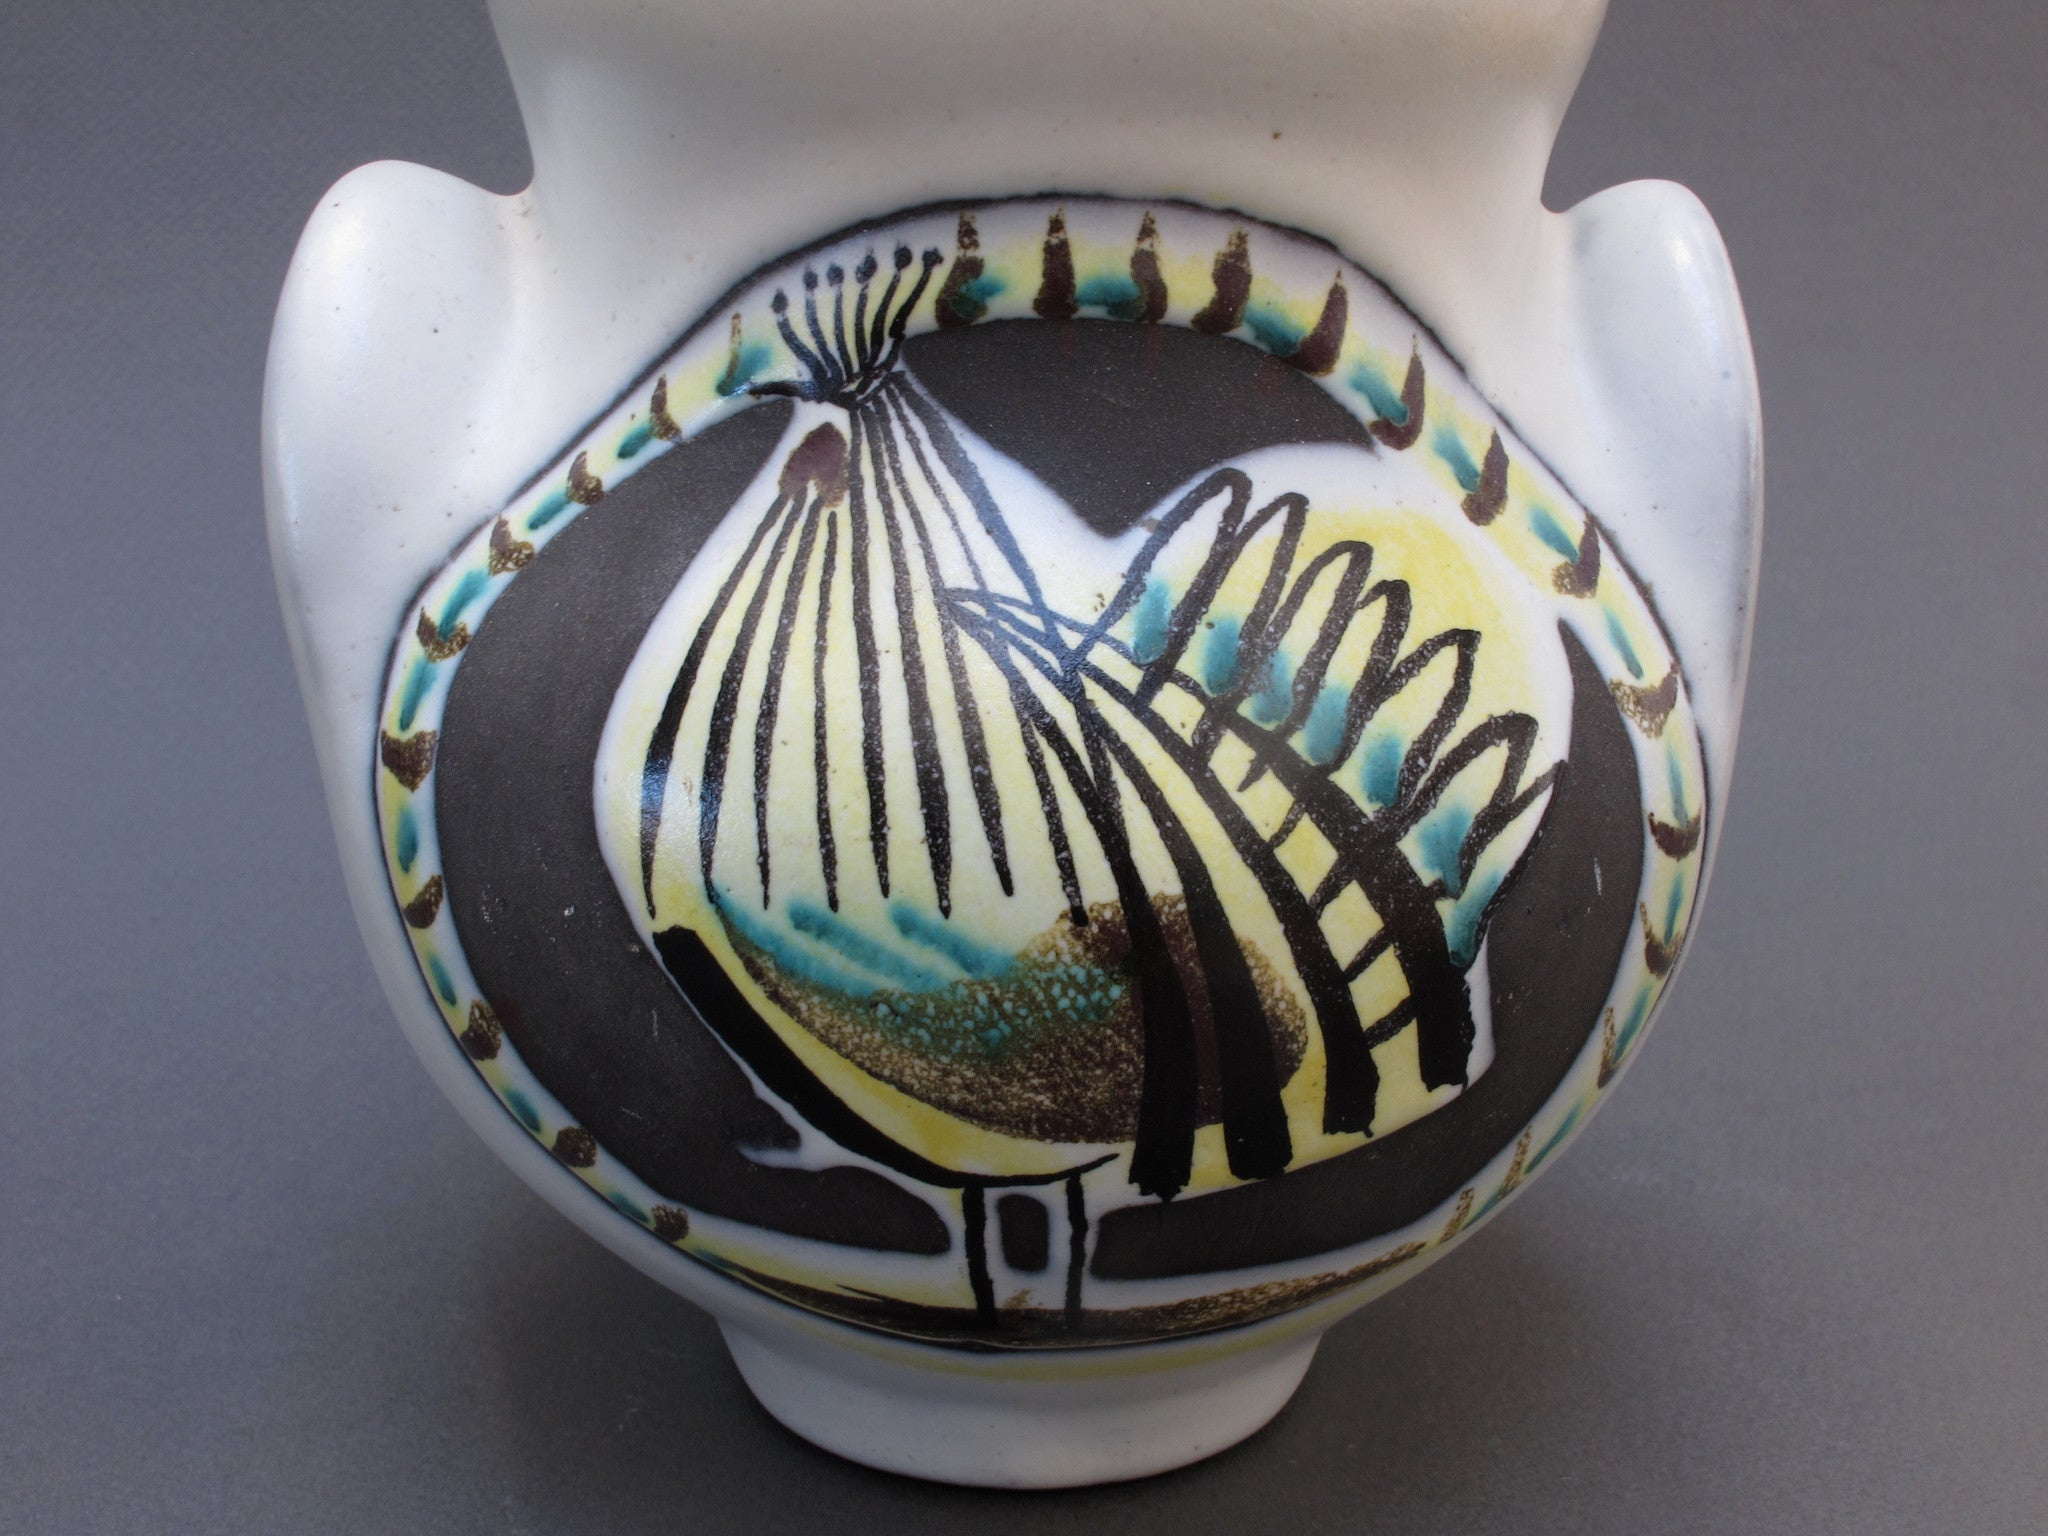 Ceramic 'Eared' Vase (Vase à Oreilles) with Rooster by Roger Capron (1950s)